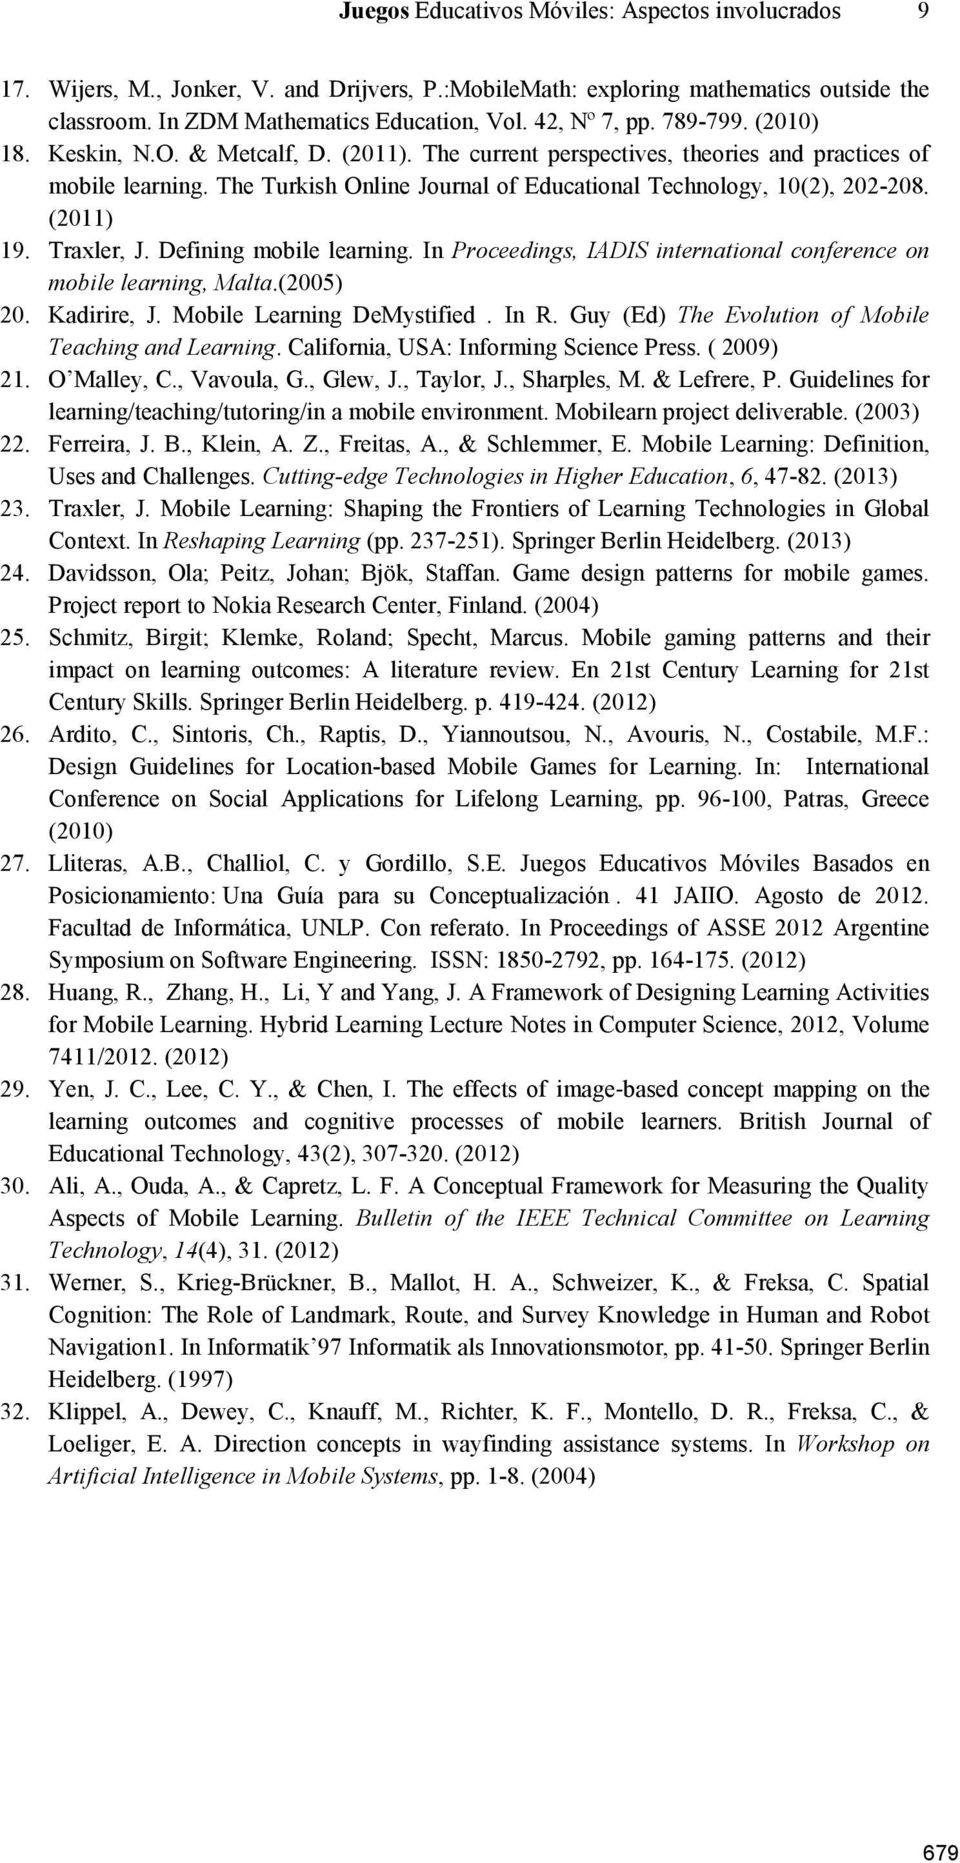 (2011) 19. Traxler, J. Defining mobile learning. In Proceedings, IADIS international conference on mobile learning, Malta.(2005) 20. Kadirire, J. Mobile Learning DeMystified. In R.